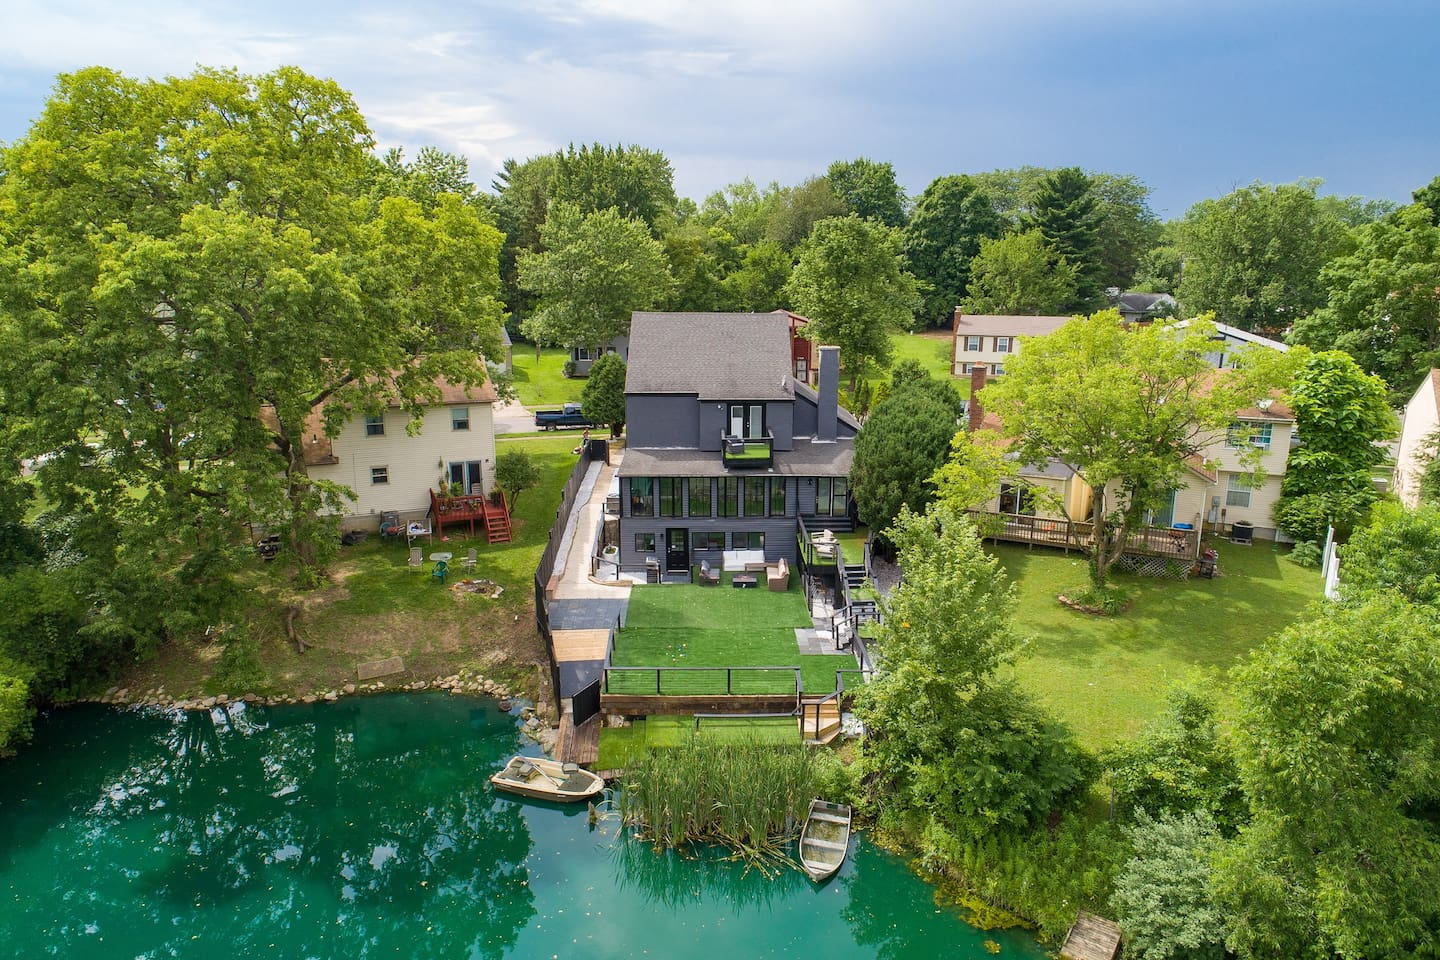 Spacious club house on pond with boats, private terrace, game rooms, and movie theatre.